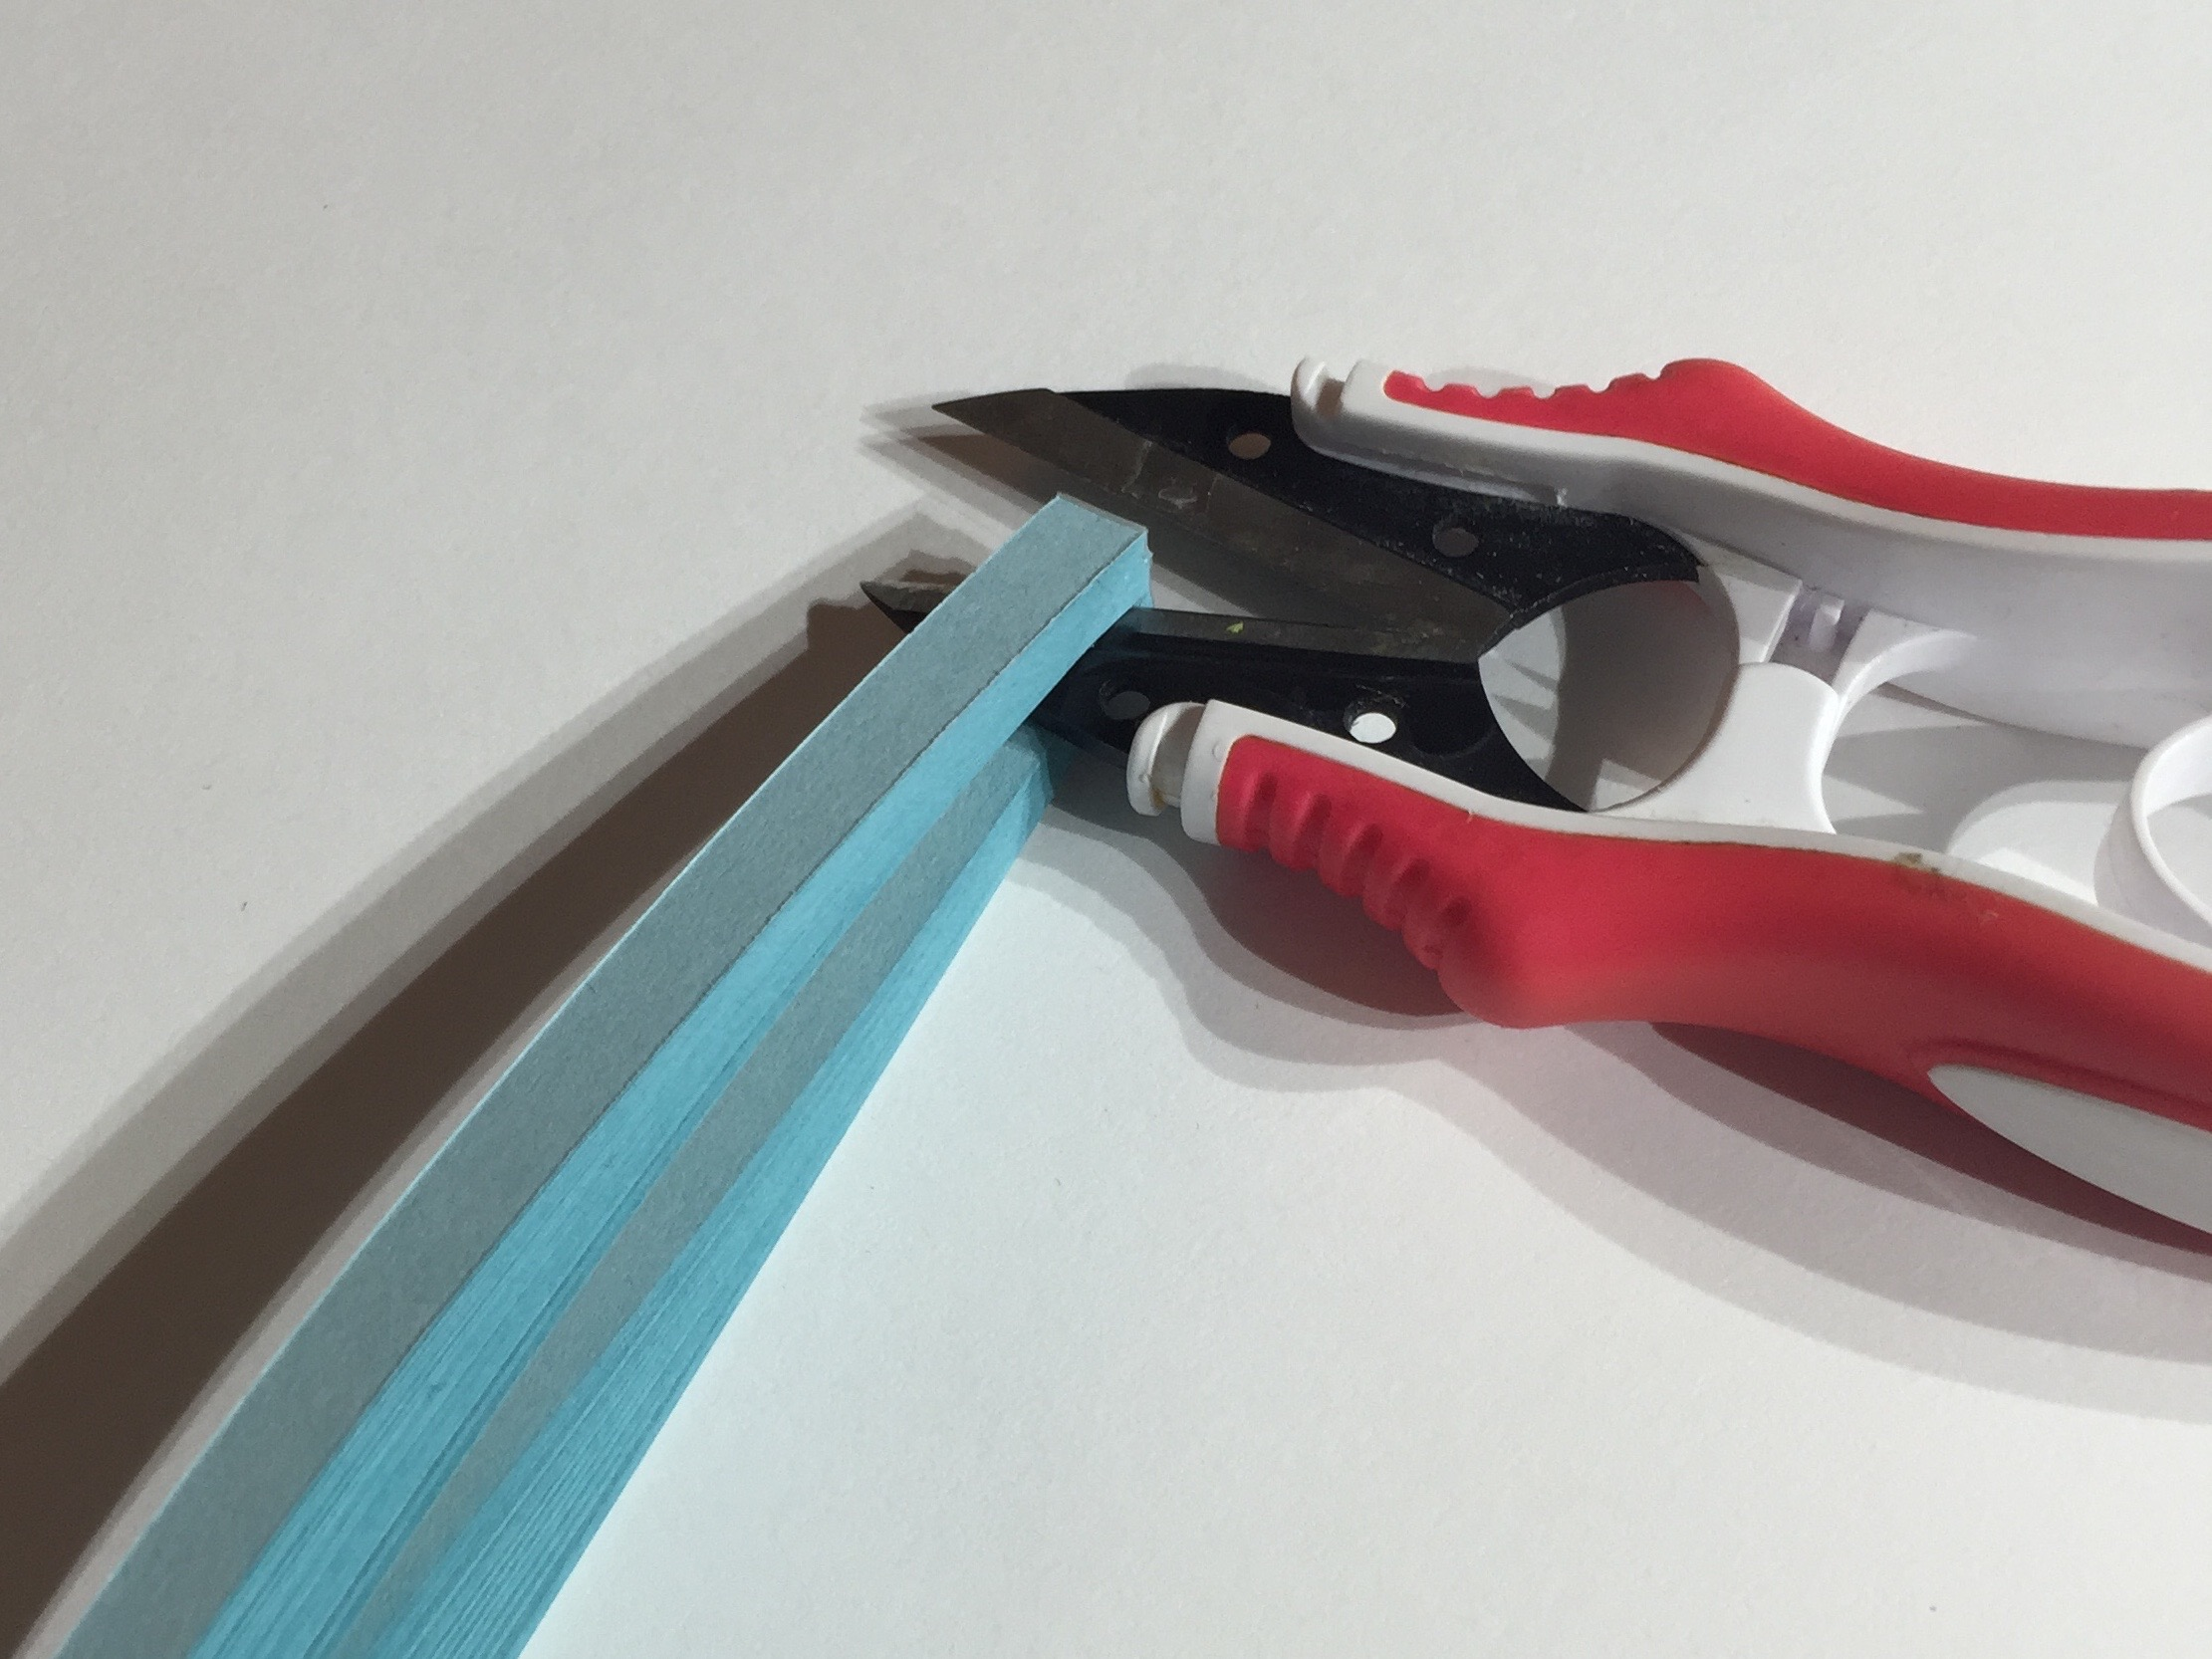 Image of scissors cutting quilling strip set in half for hanging